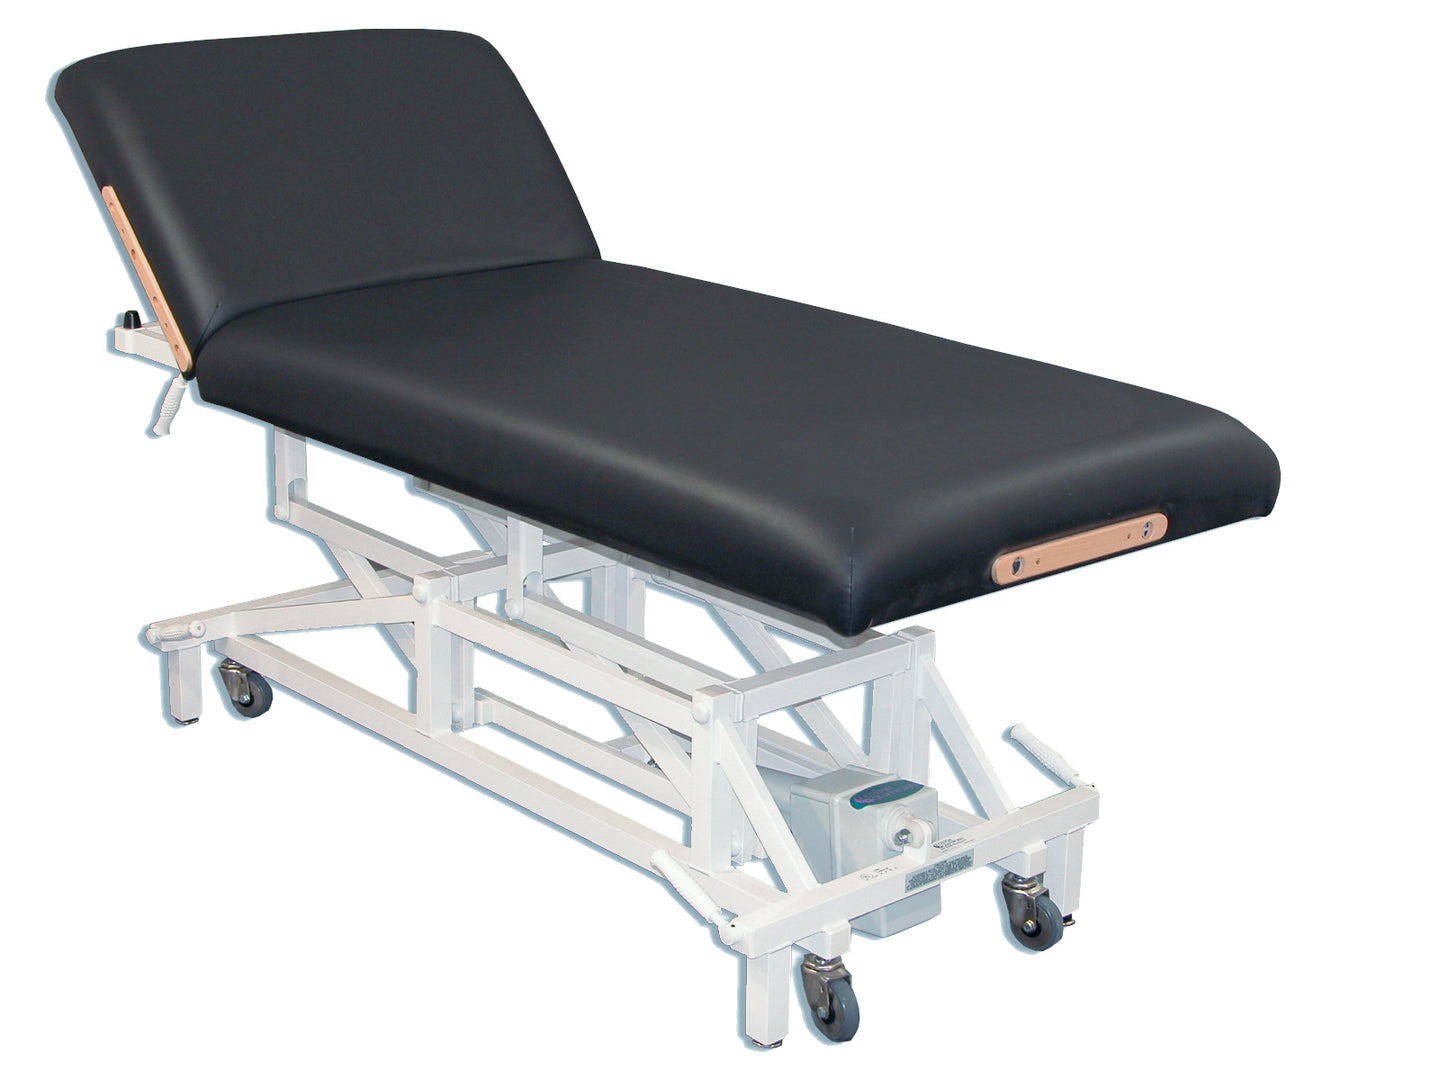 Custom Craftworks - McKenzie Lift Back Electric Lift Massage Table - Superb Massage Tables